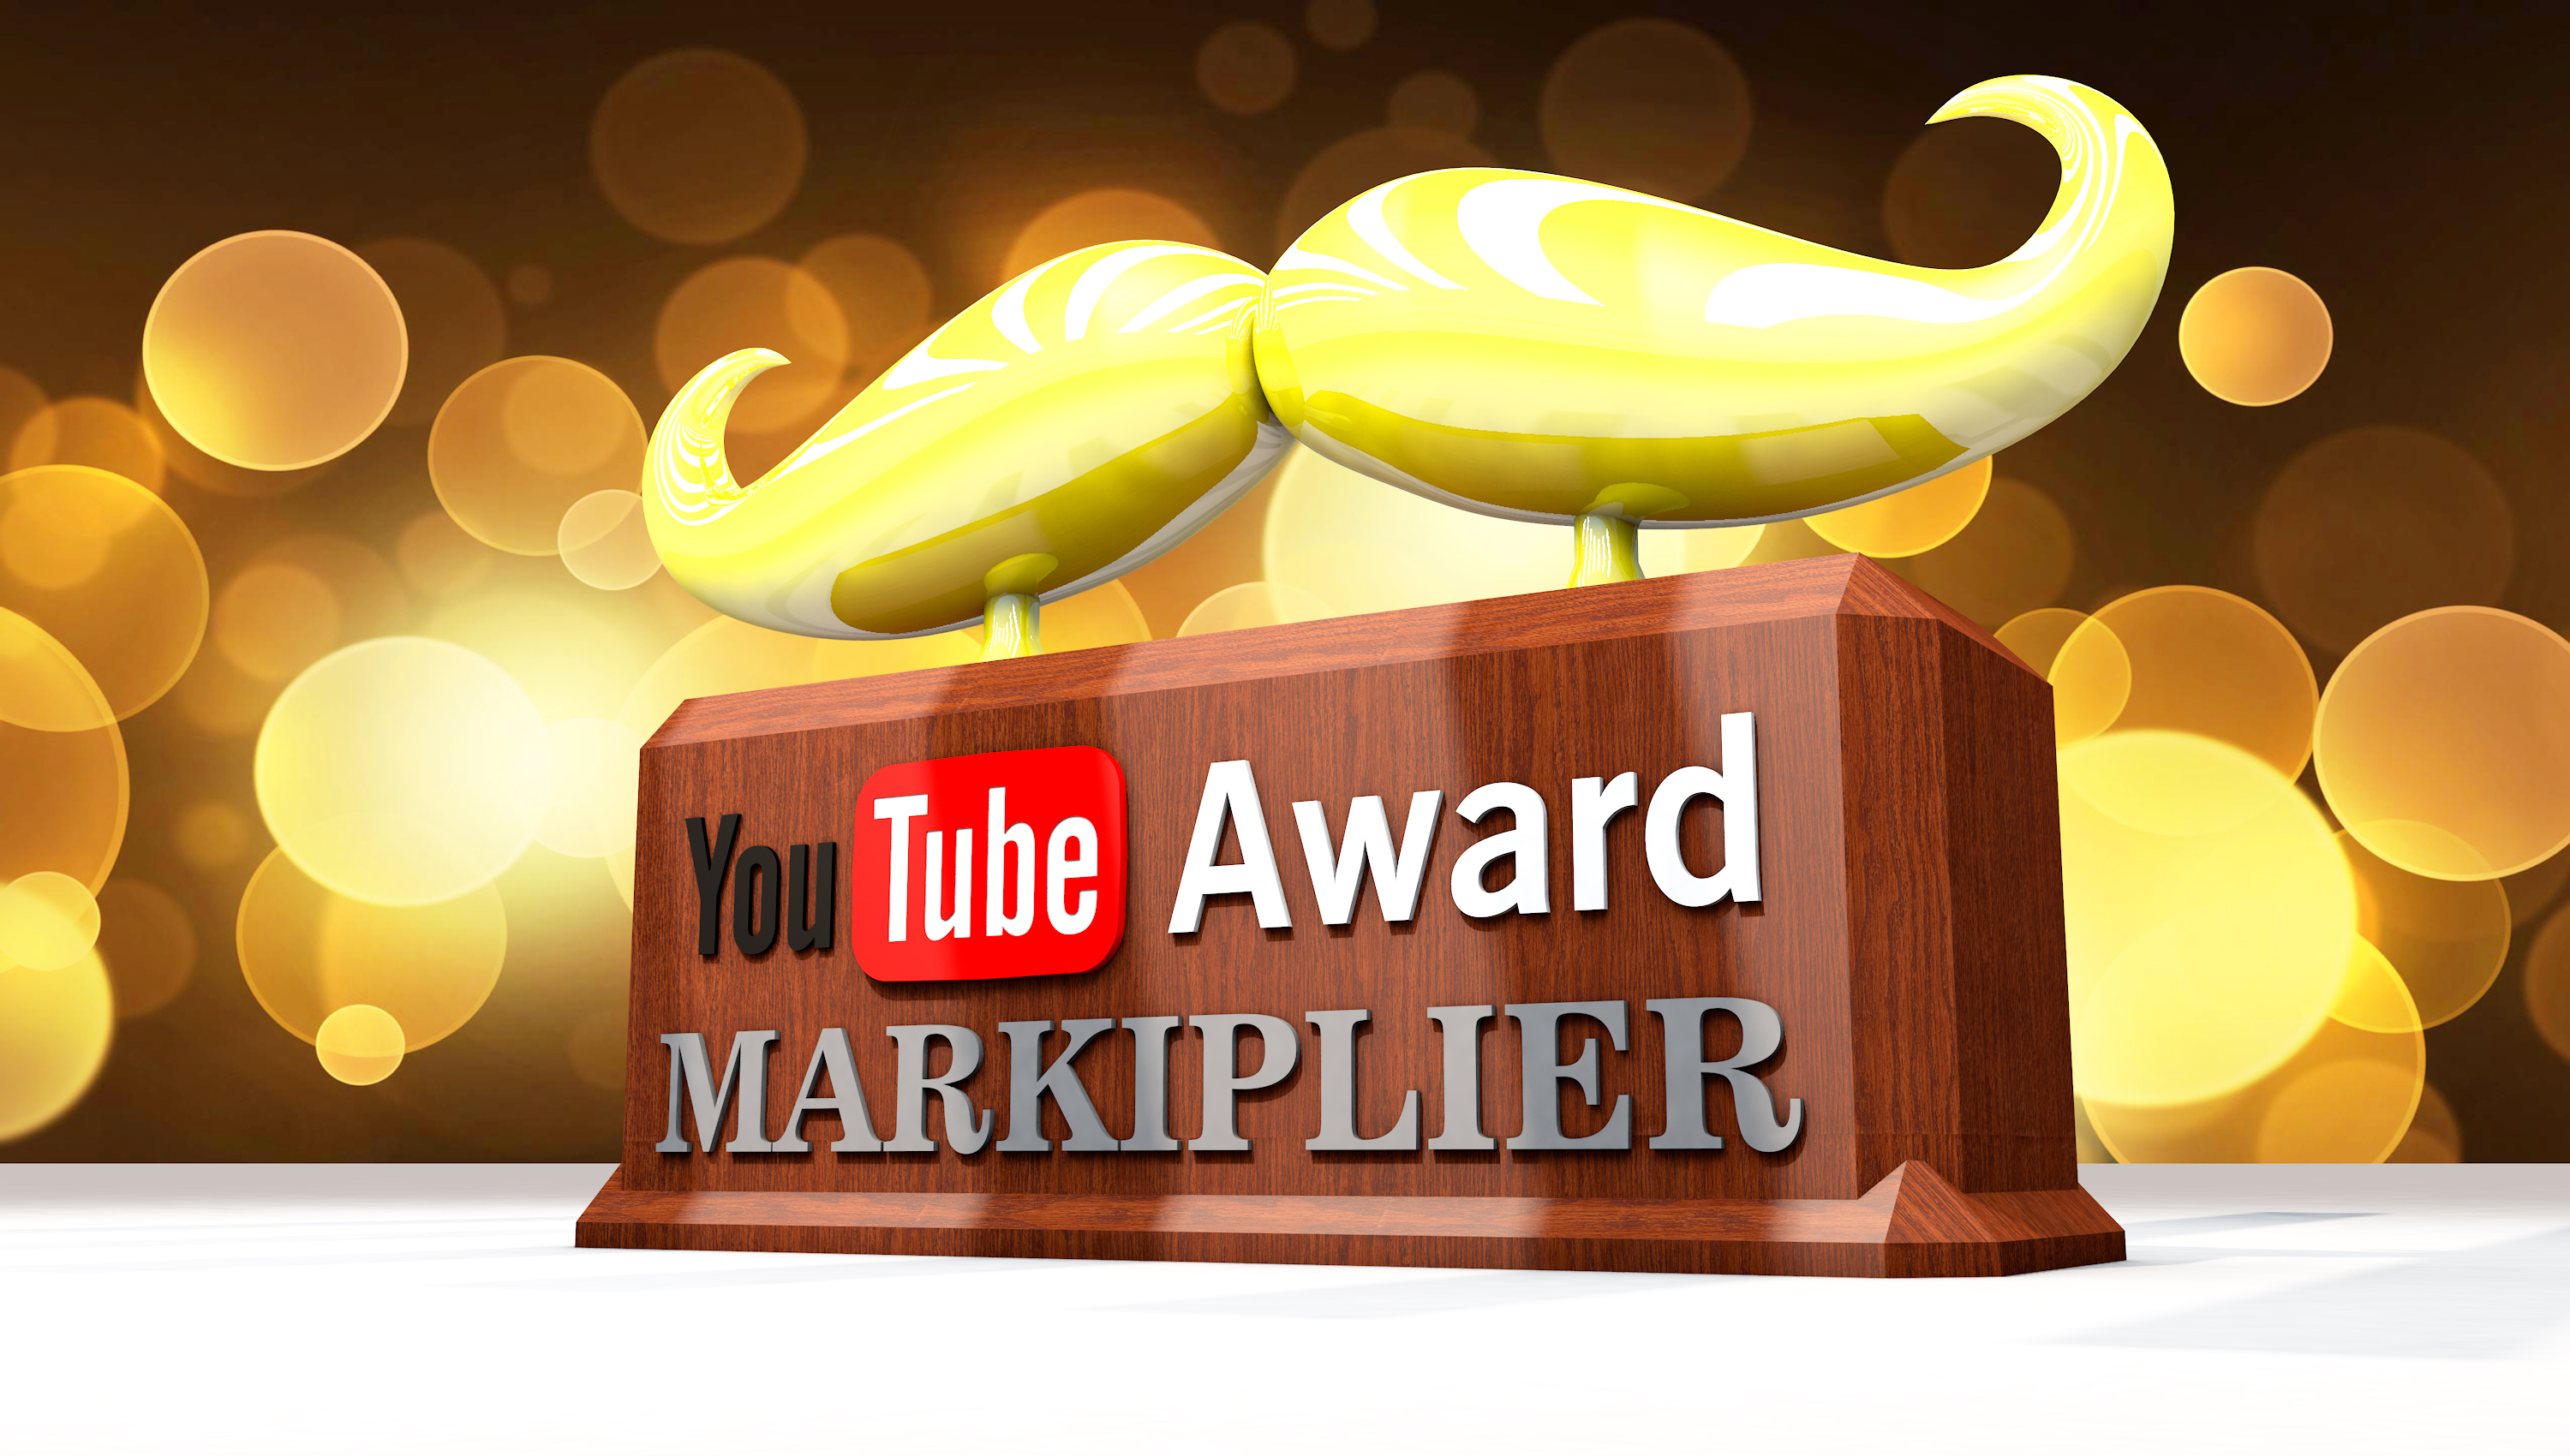 Markiplier Award by tiberius121212